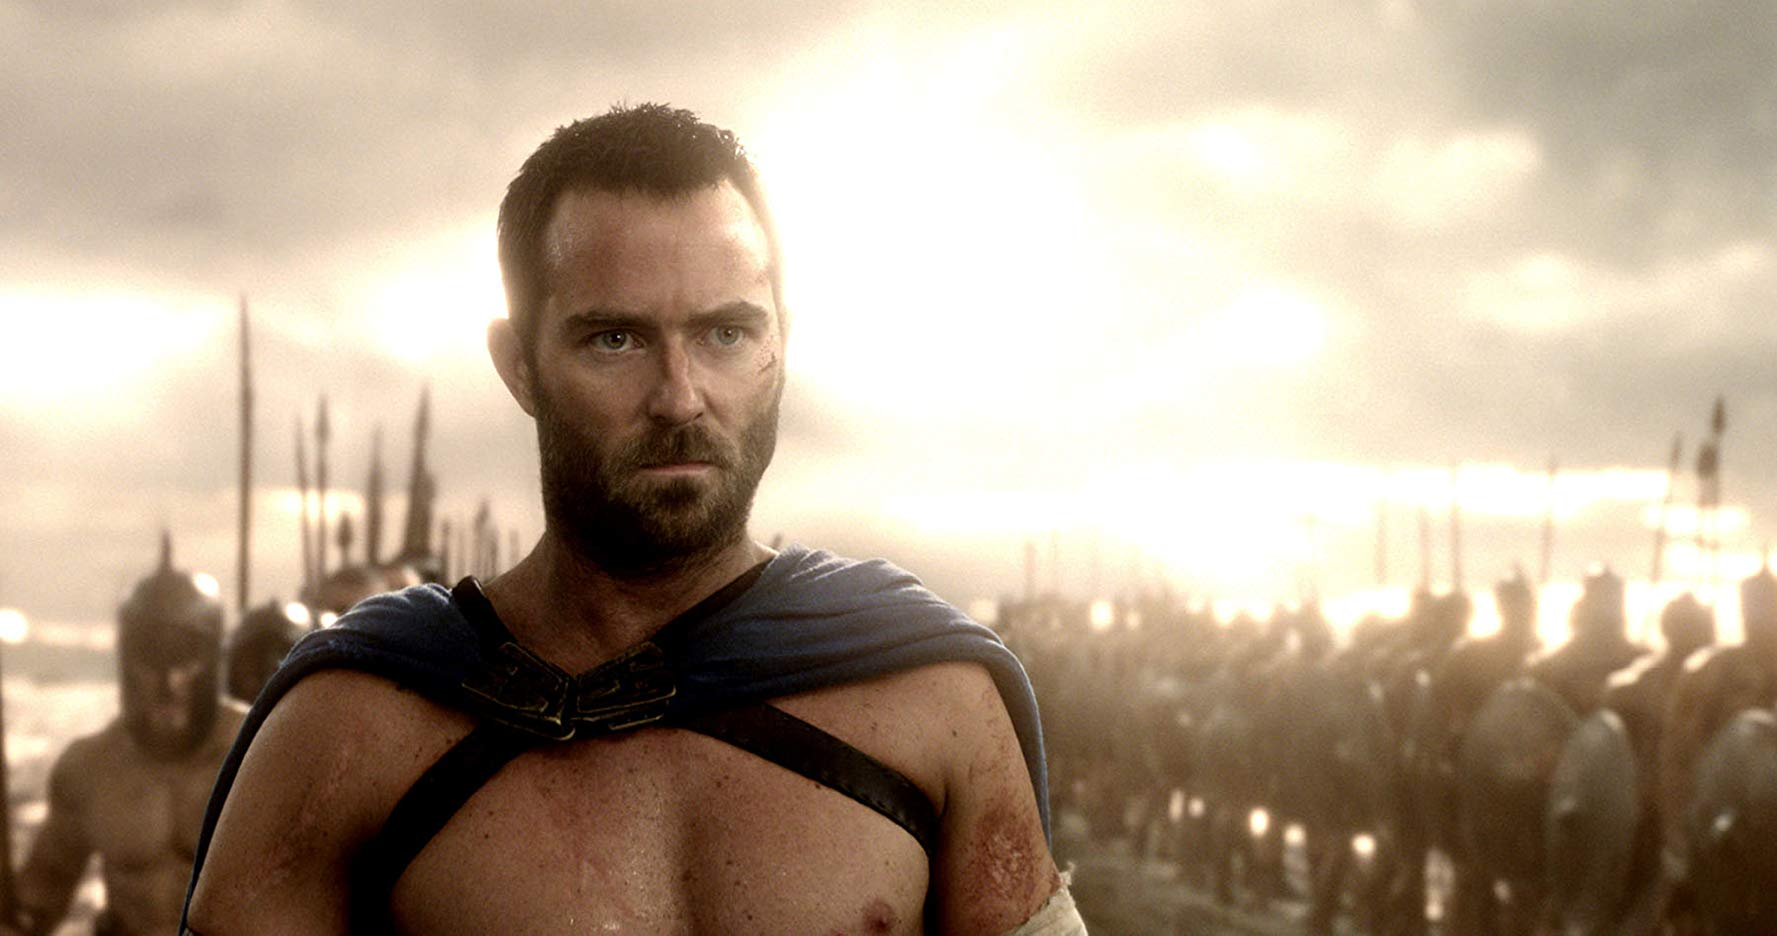 Sullivan Stapleton as the Greek general Themistocles in 300: Rise of an Empire (2014)